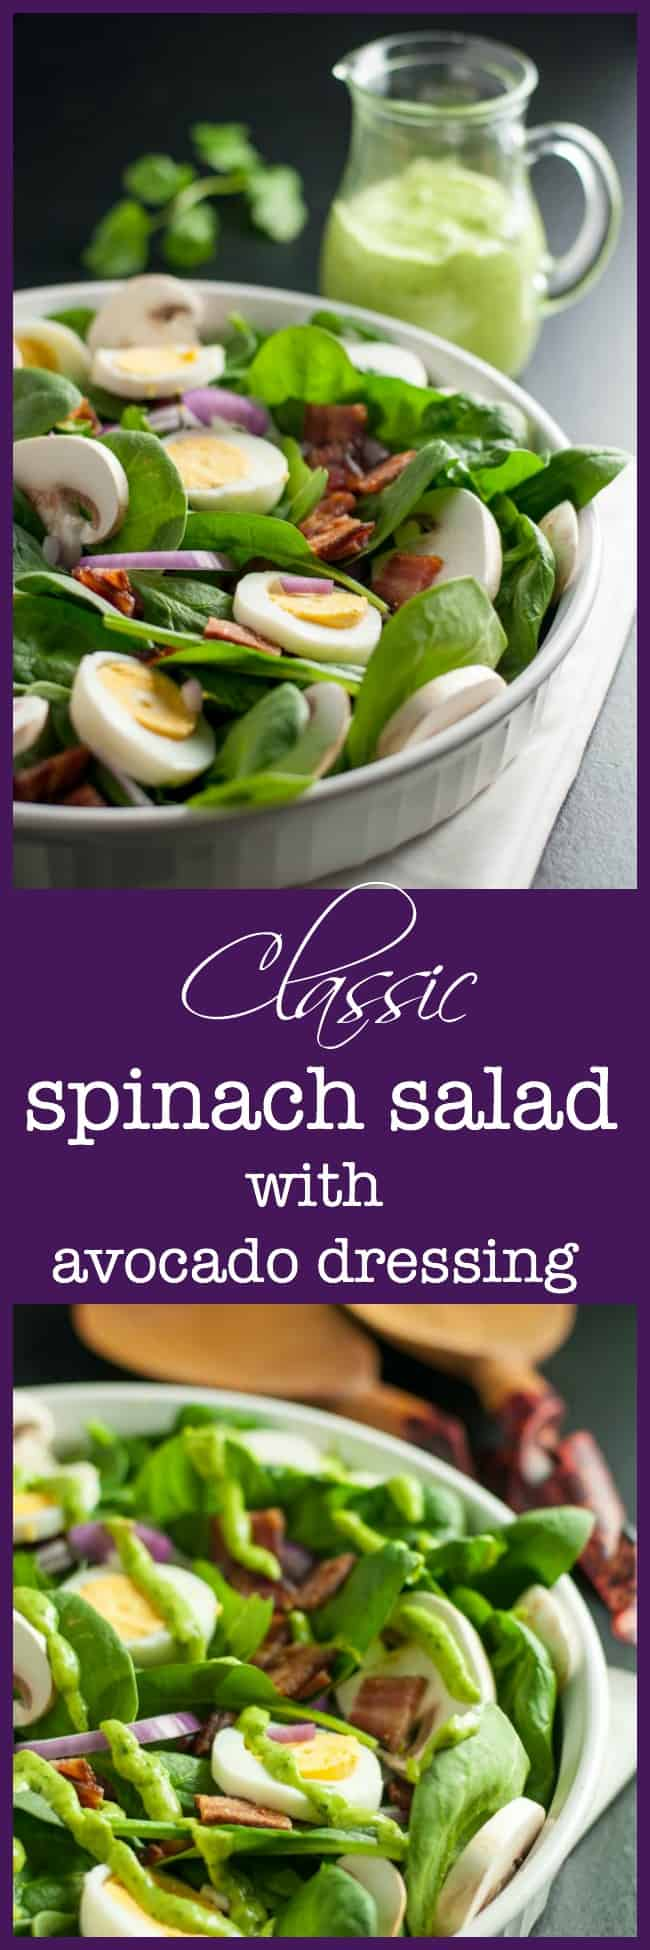 Classic Spinach Salad with Dairy-Free Creamy Avocado Dressing.